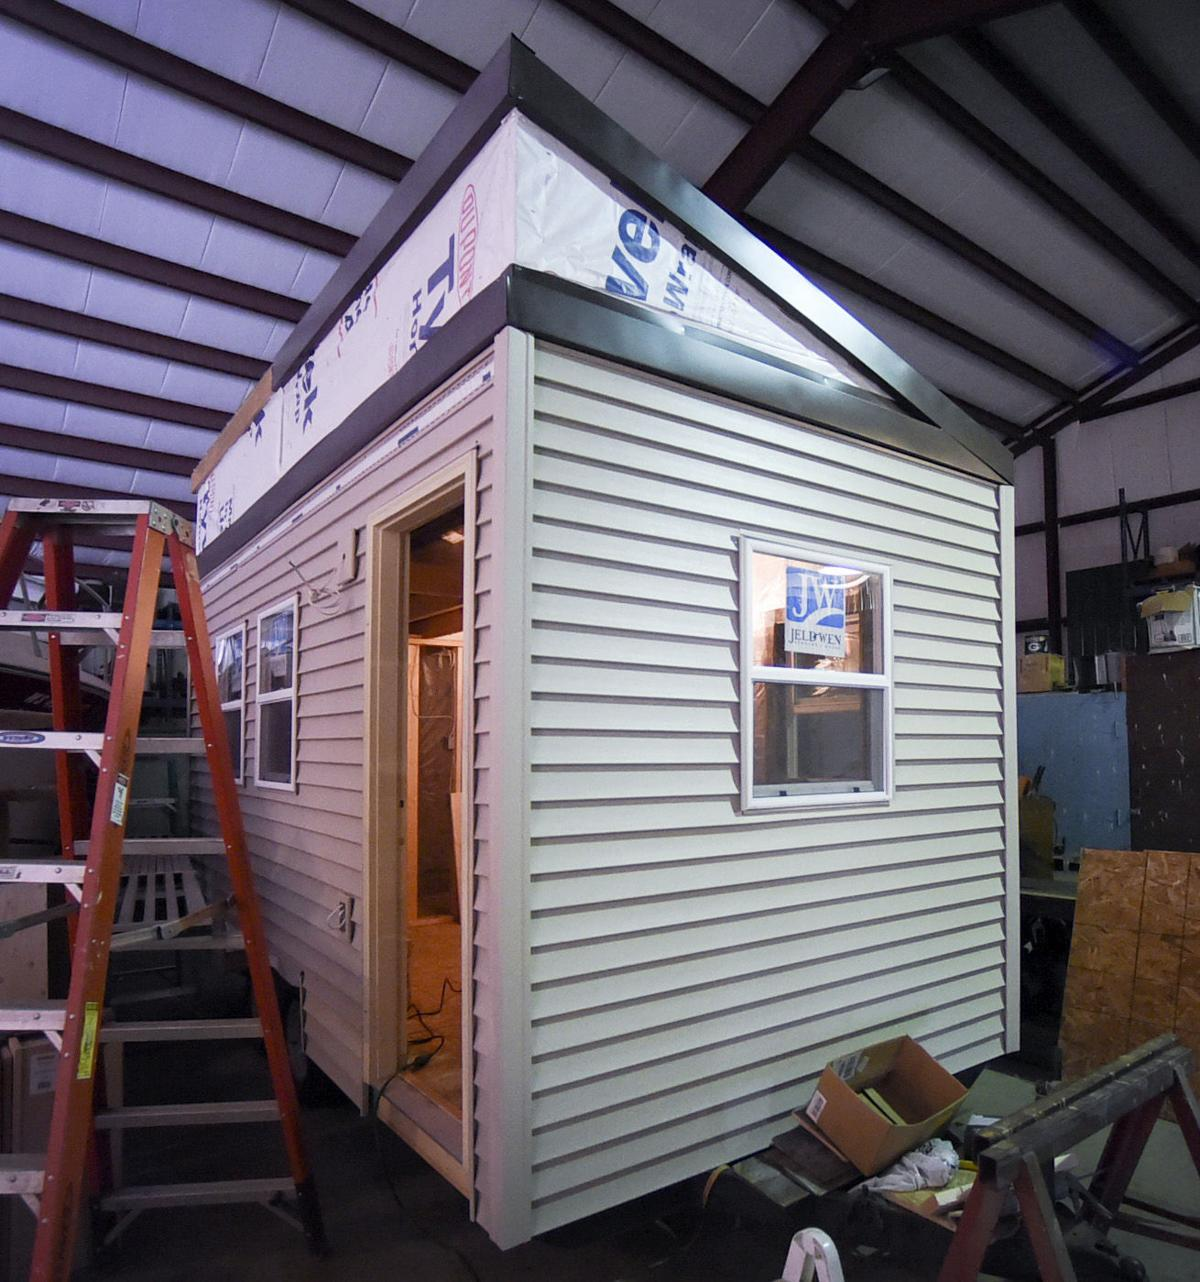 Racine veterans tiny house village site announced Local News